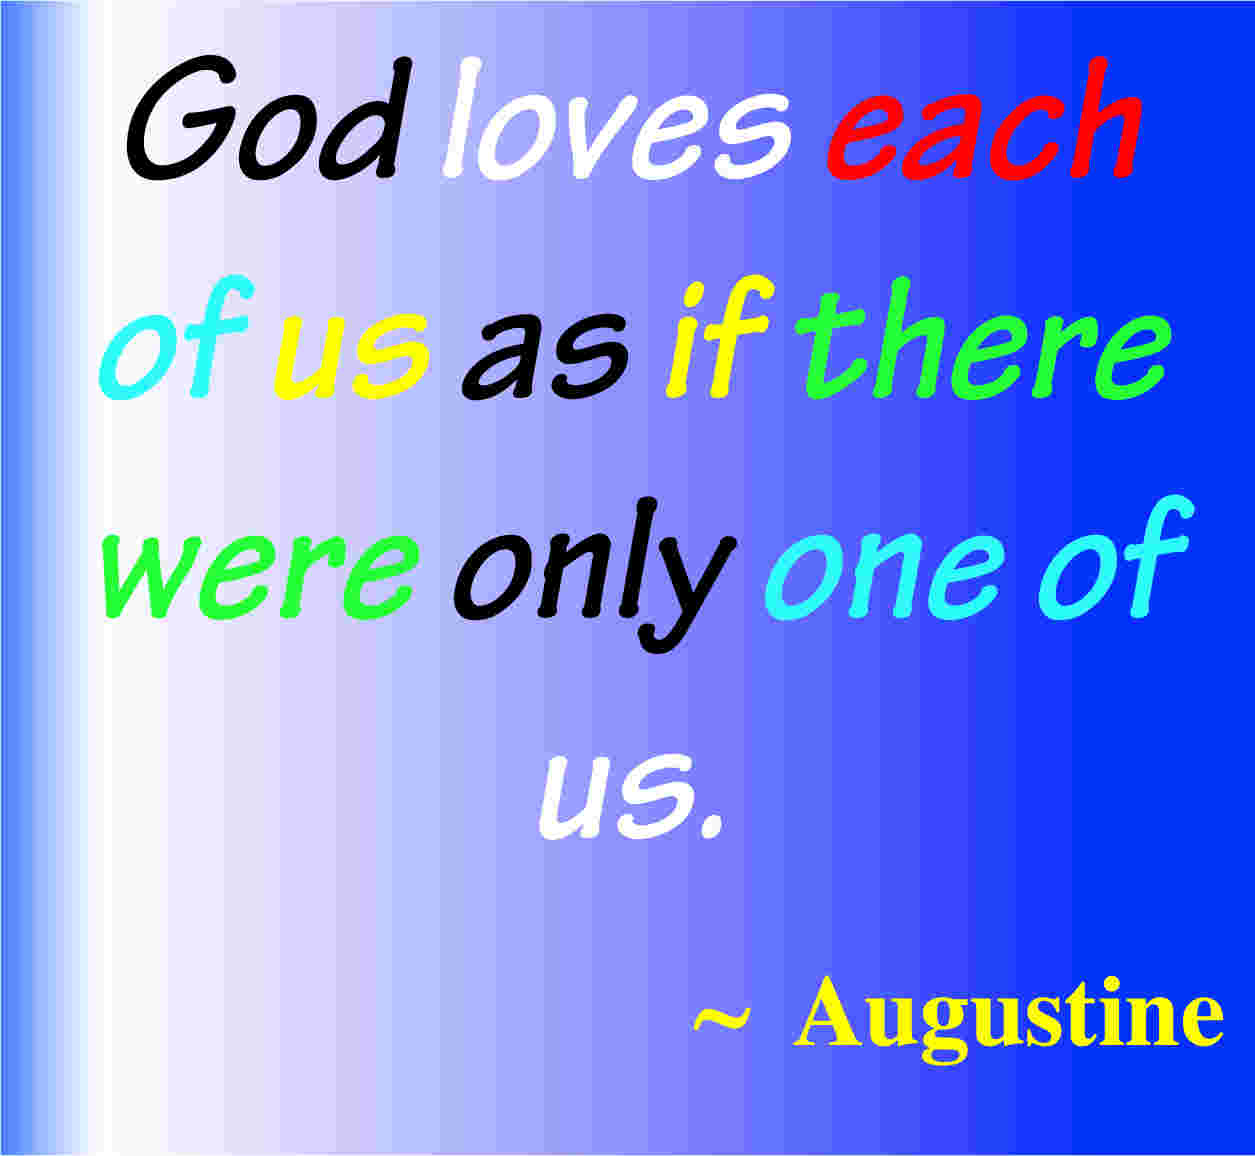 Love Quotes In The Bible Endearing 20 Inspirational Bible Verses About God's Love